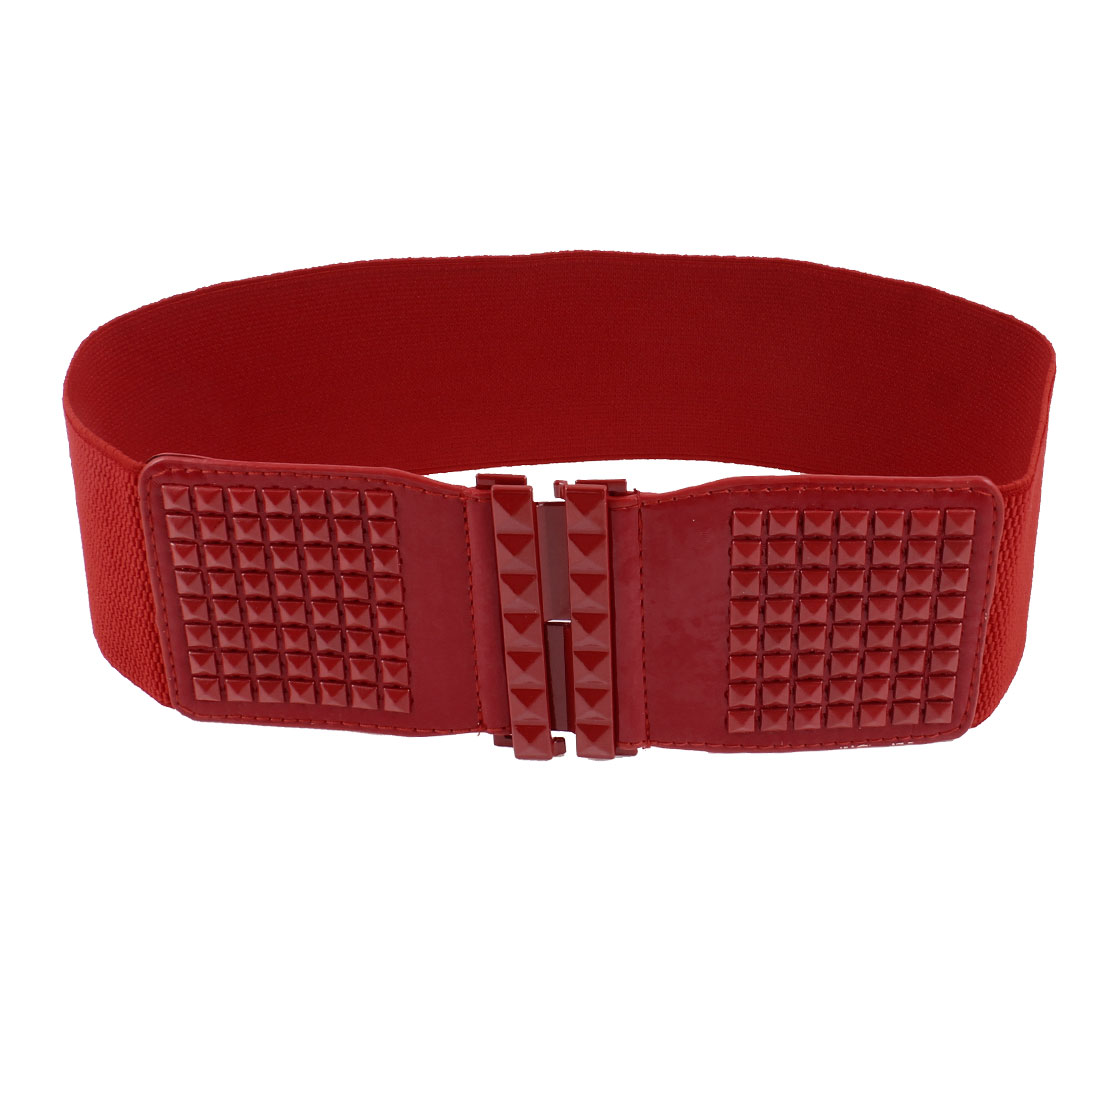 Ladies Square Faceted Bead Interlocking Buckle 7cm Wide Red Stretchy Waist Belt